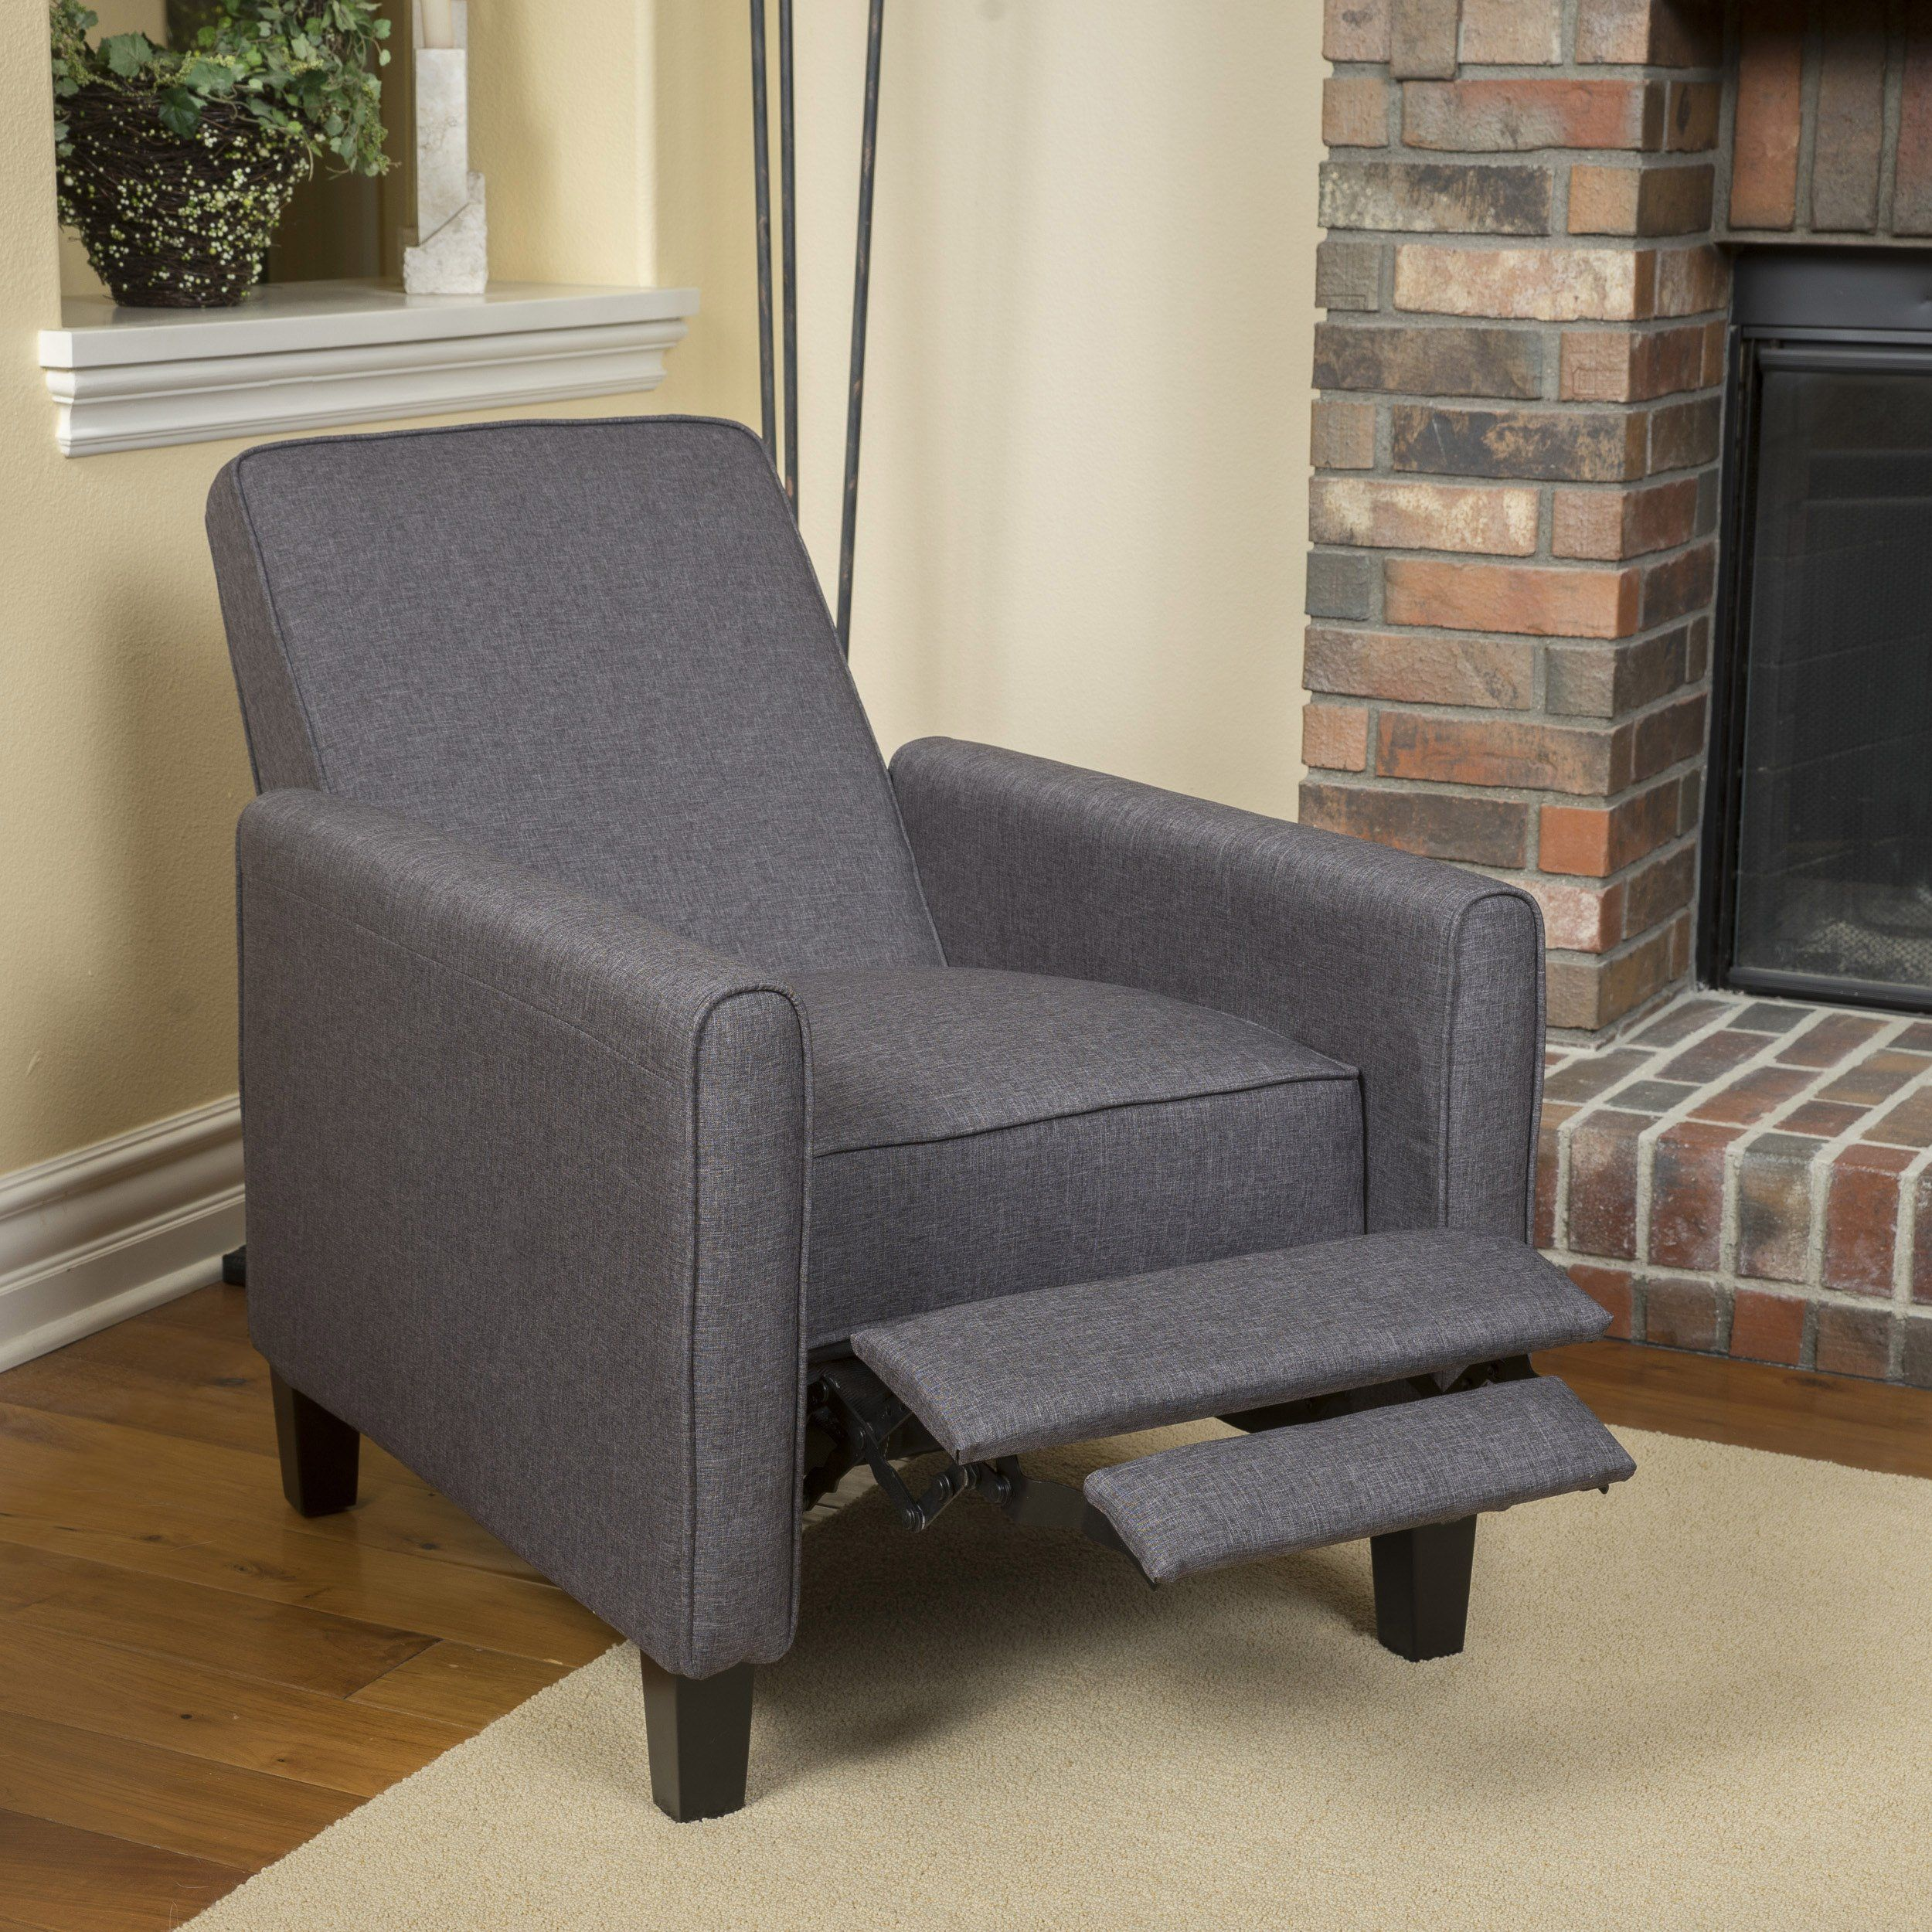 14 Comfortable Chairs For Small Spaces To Cozy Up Your Living Room Club Chairs Chairs For Small Spaces Living Room Chairs